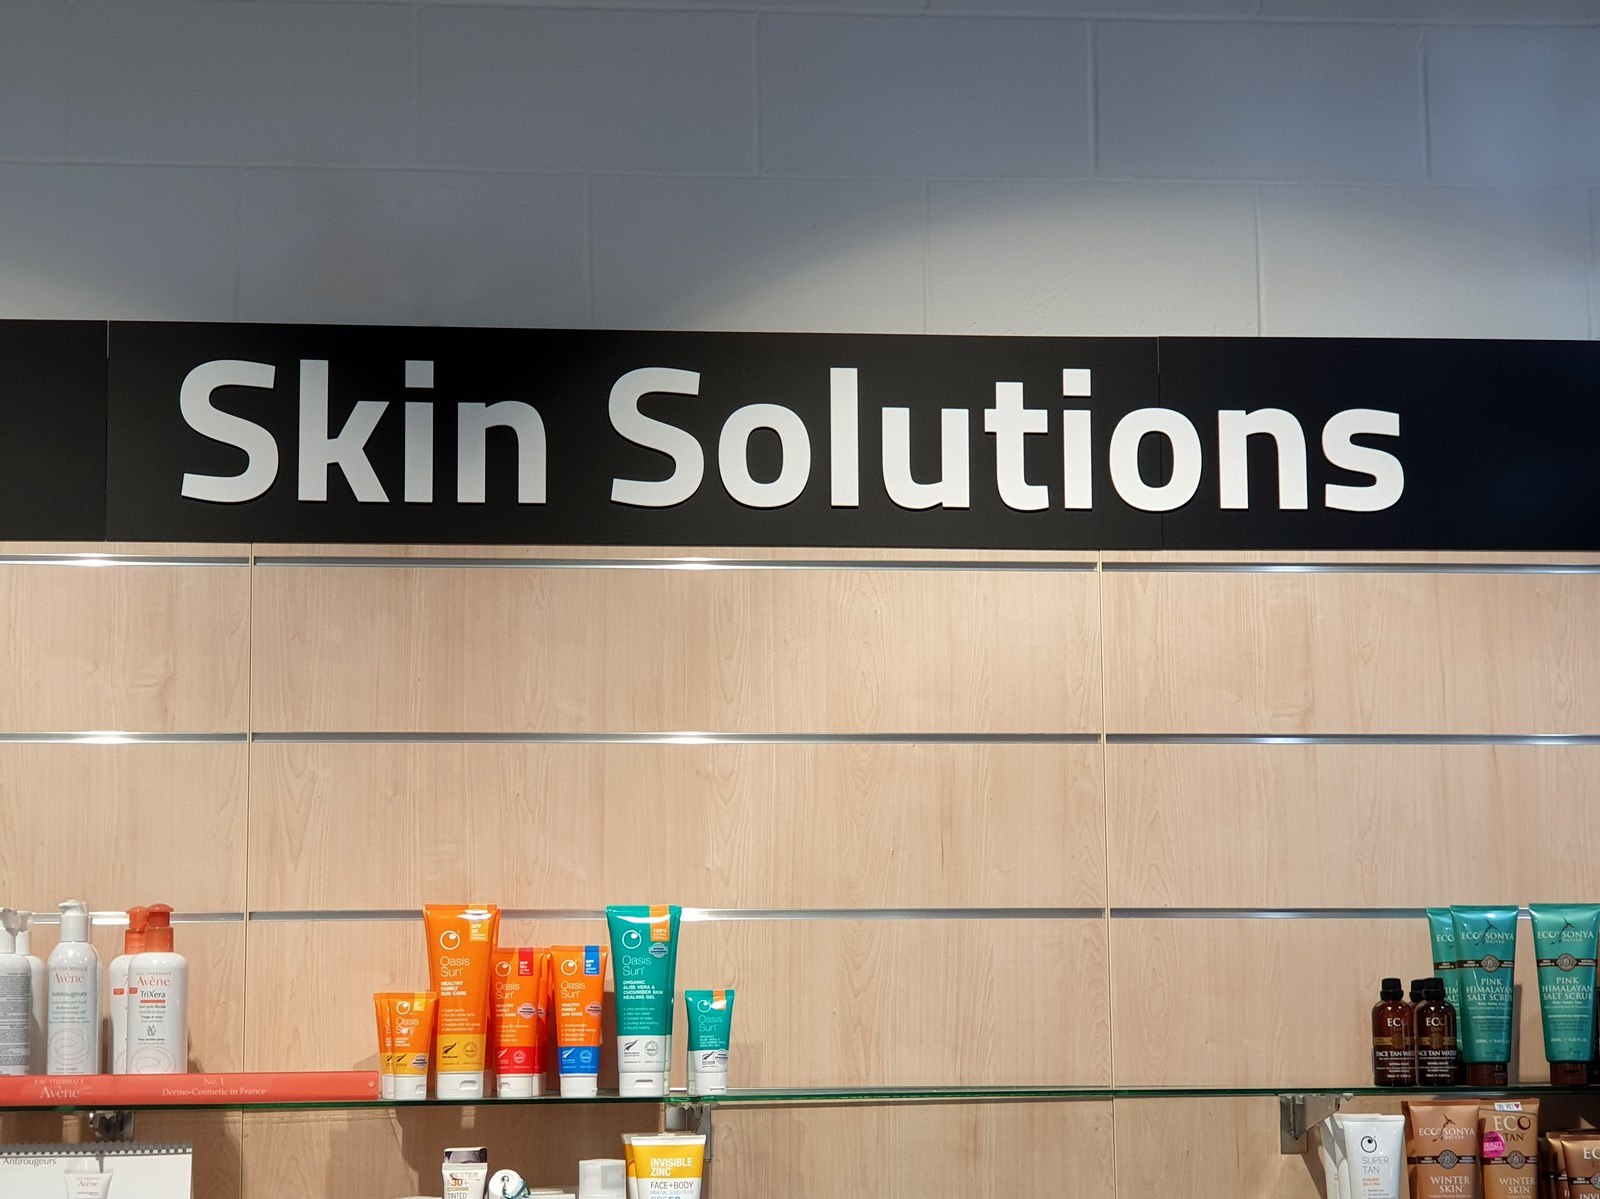 Skin solutions  display sign